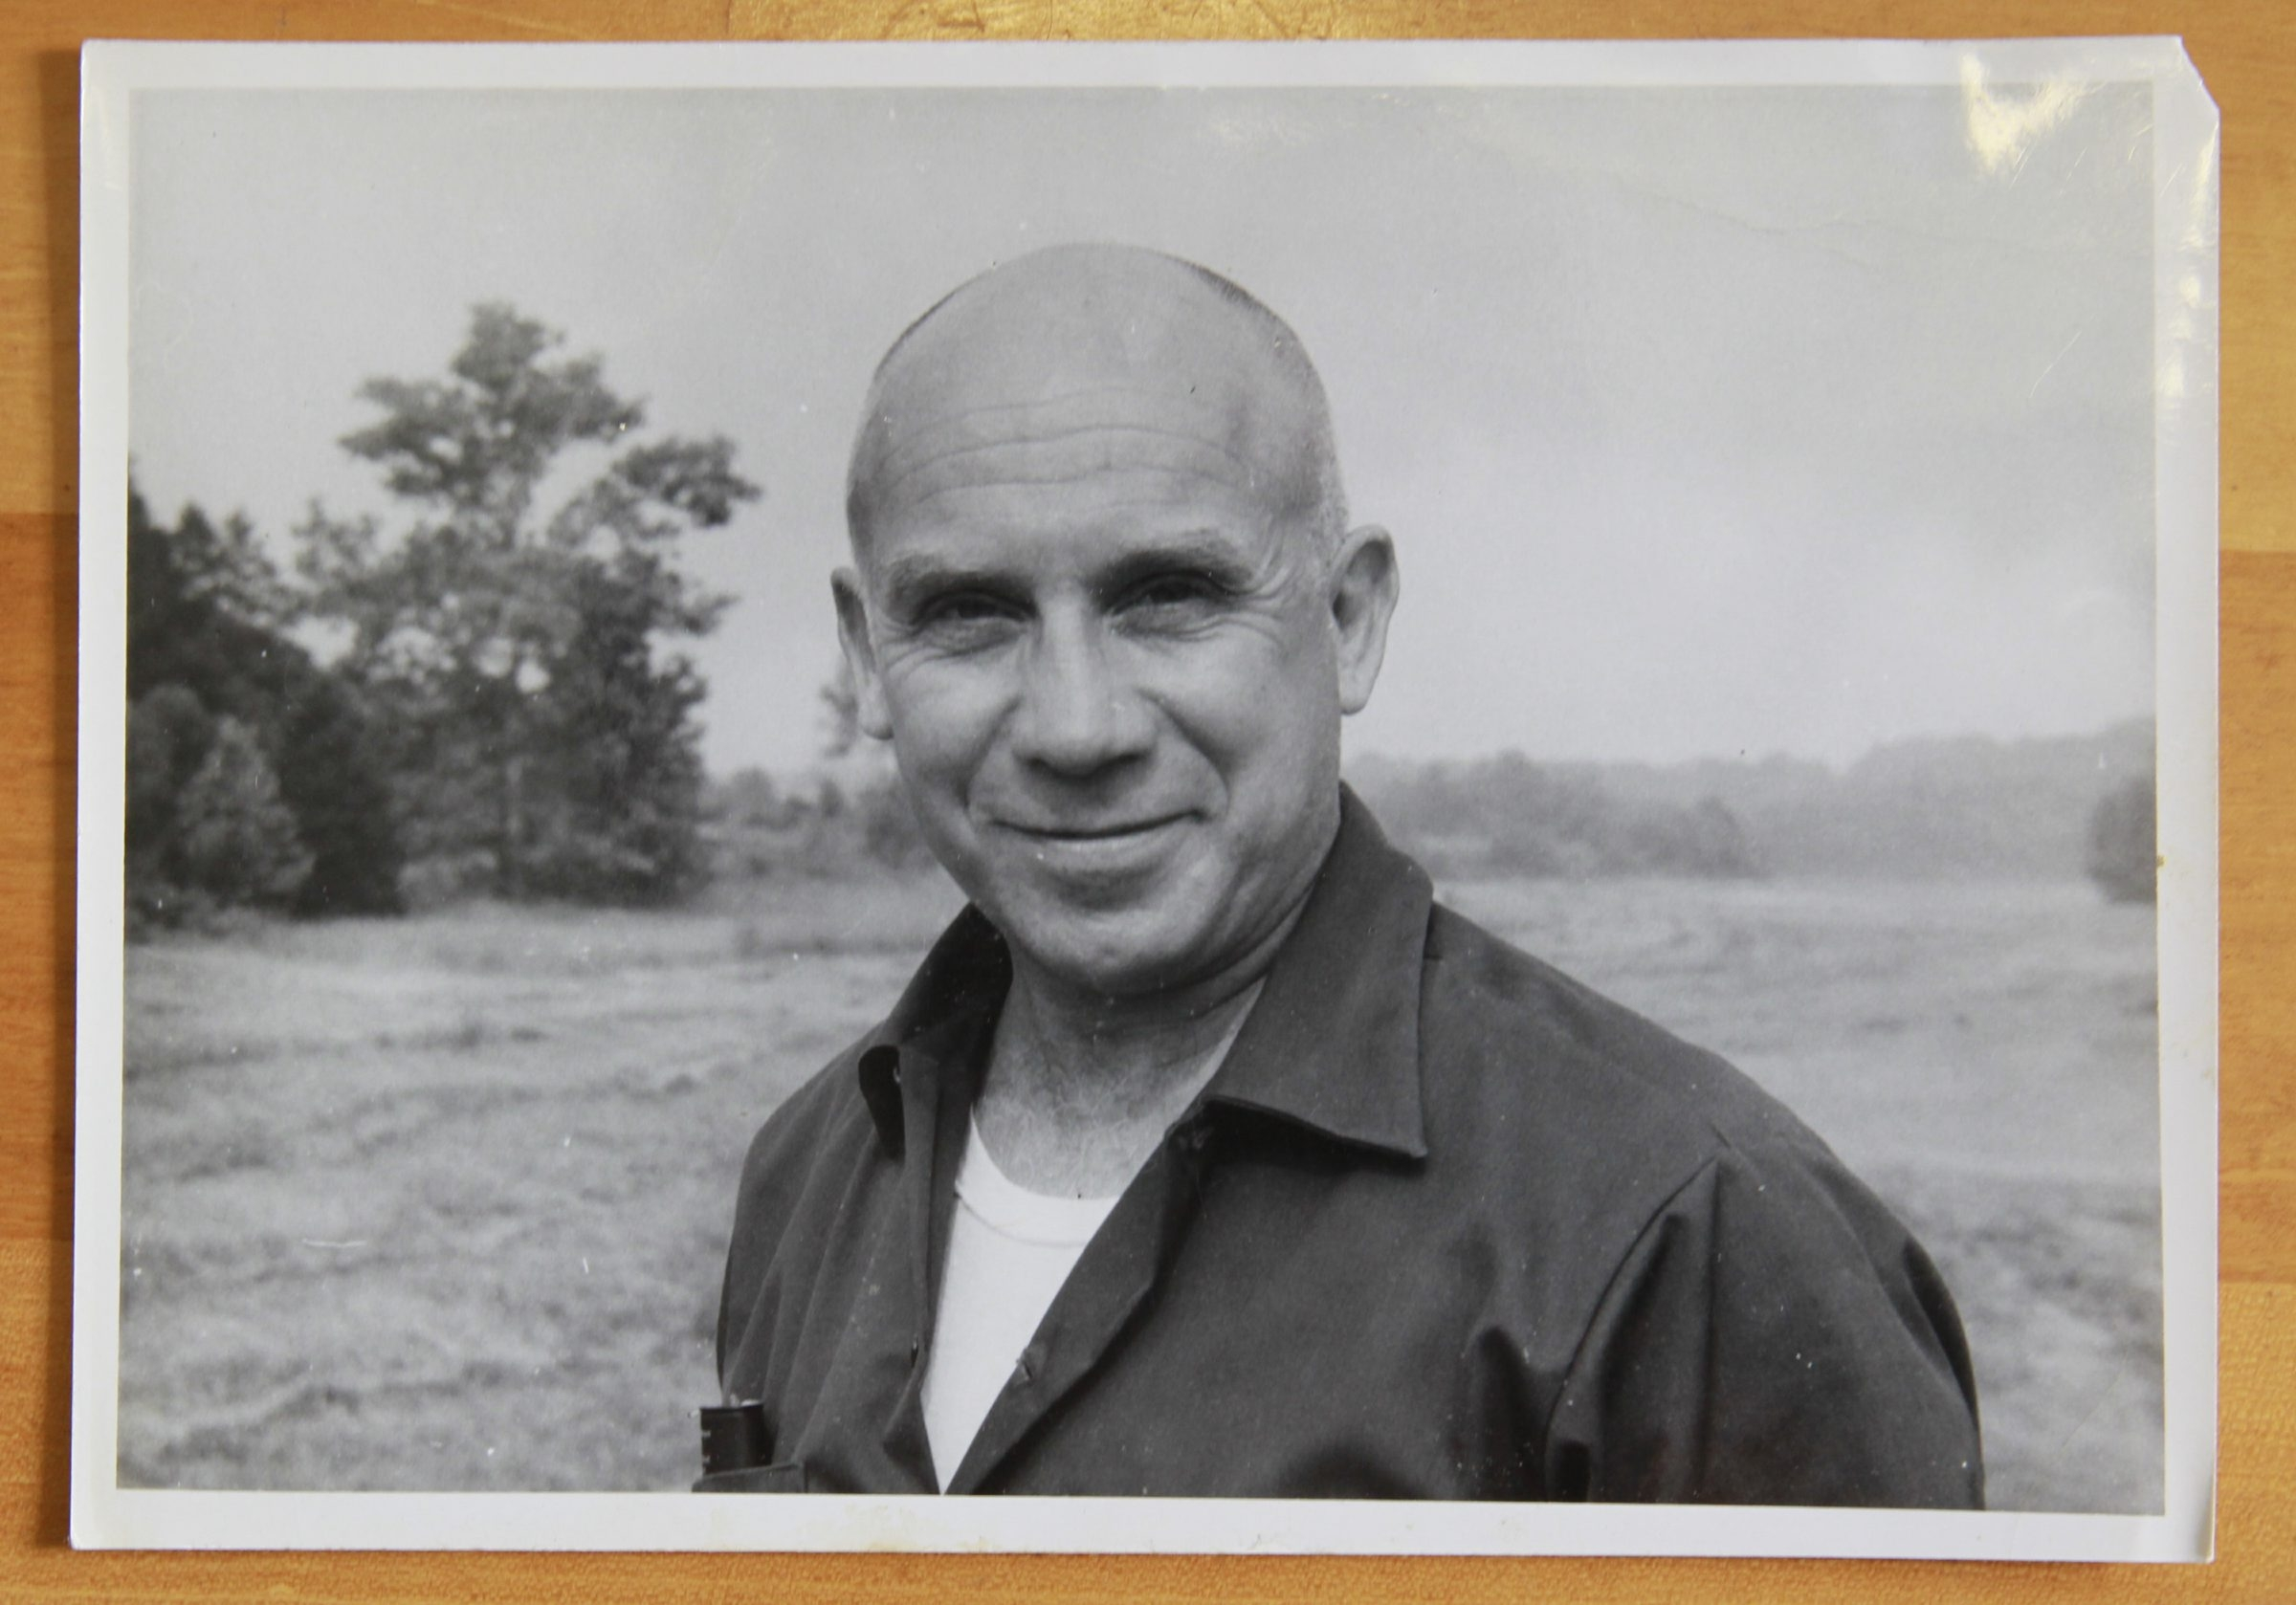 Thomas Merton spent time on the St. Bonaventure campus before becoming a Trappist monk.